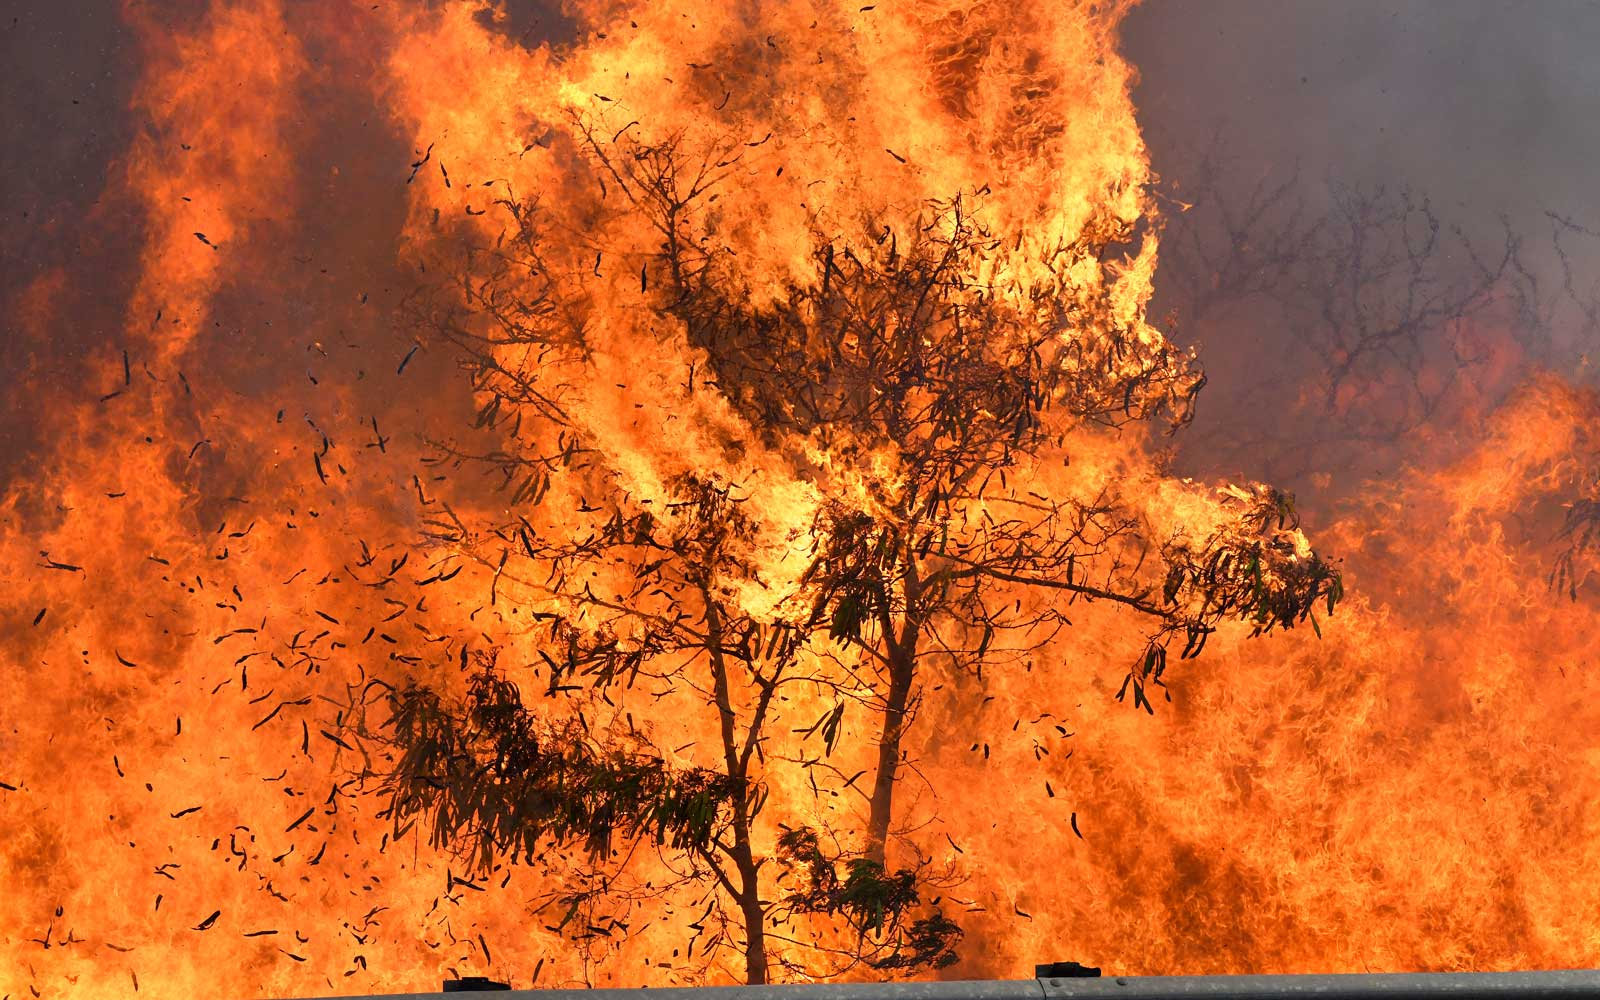 An out of control wildfire that began along a major Central Maui highway burns Thursday July 11, 2019, in Maui, Hawaii.